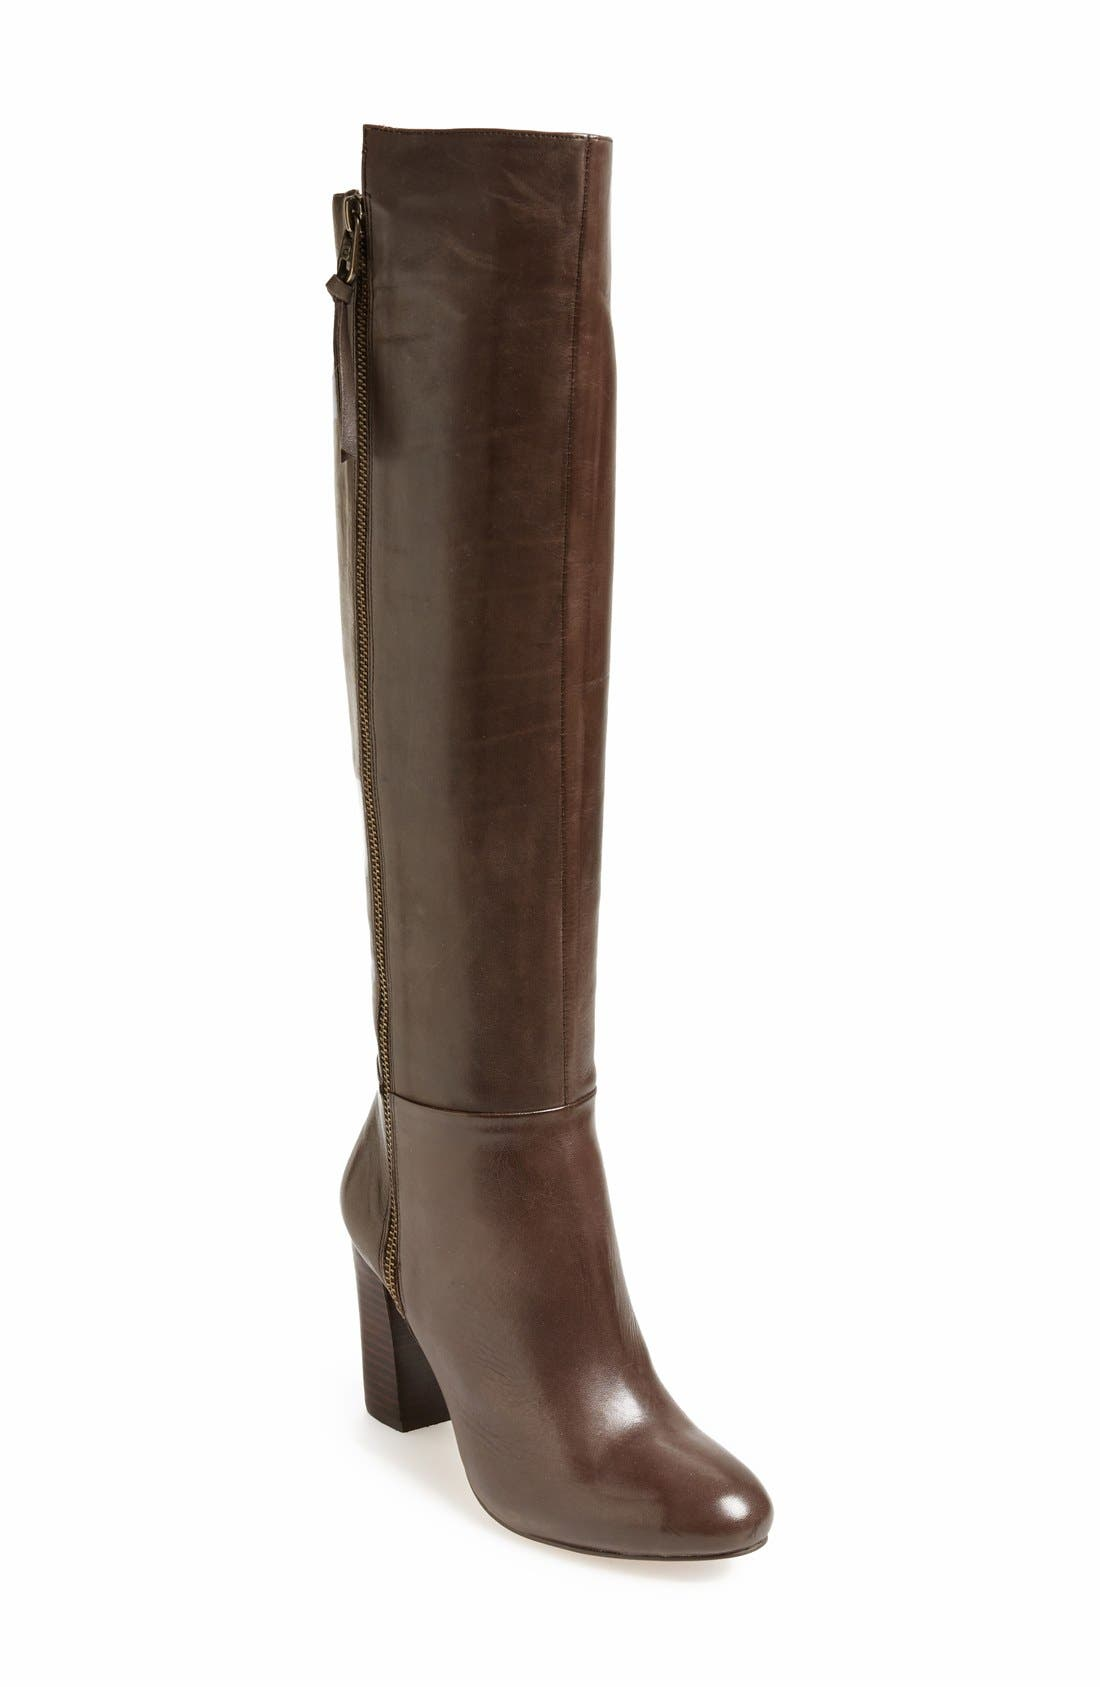 Alternate Image 1 Selected - Elliott Lucca 'Delanna' Leather Boot (Women)